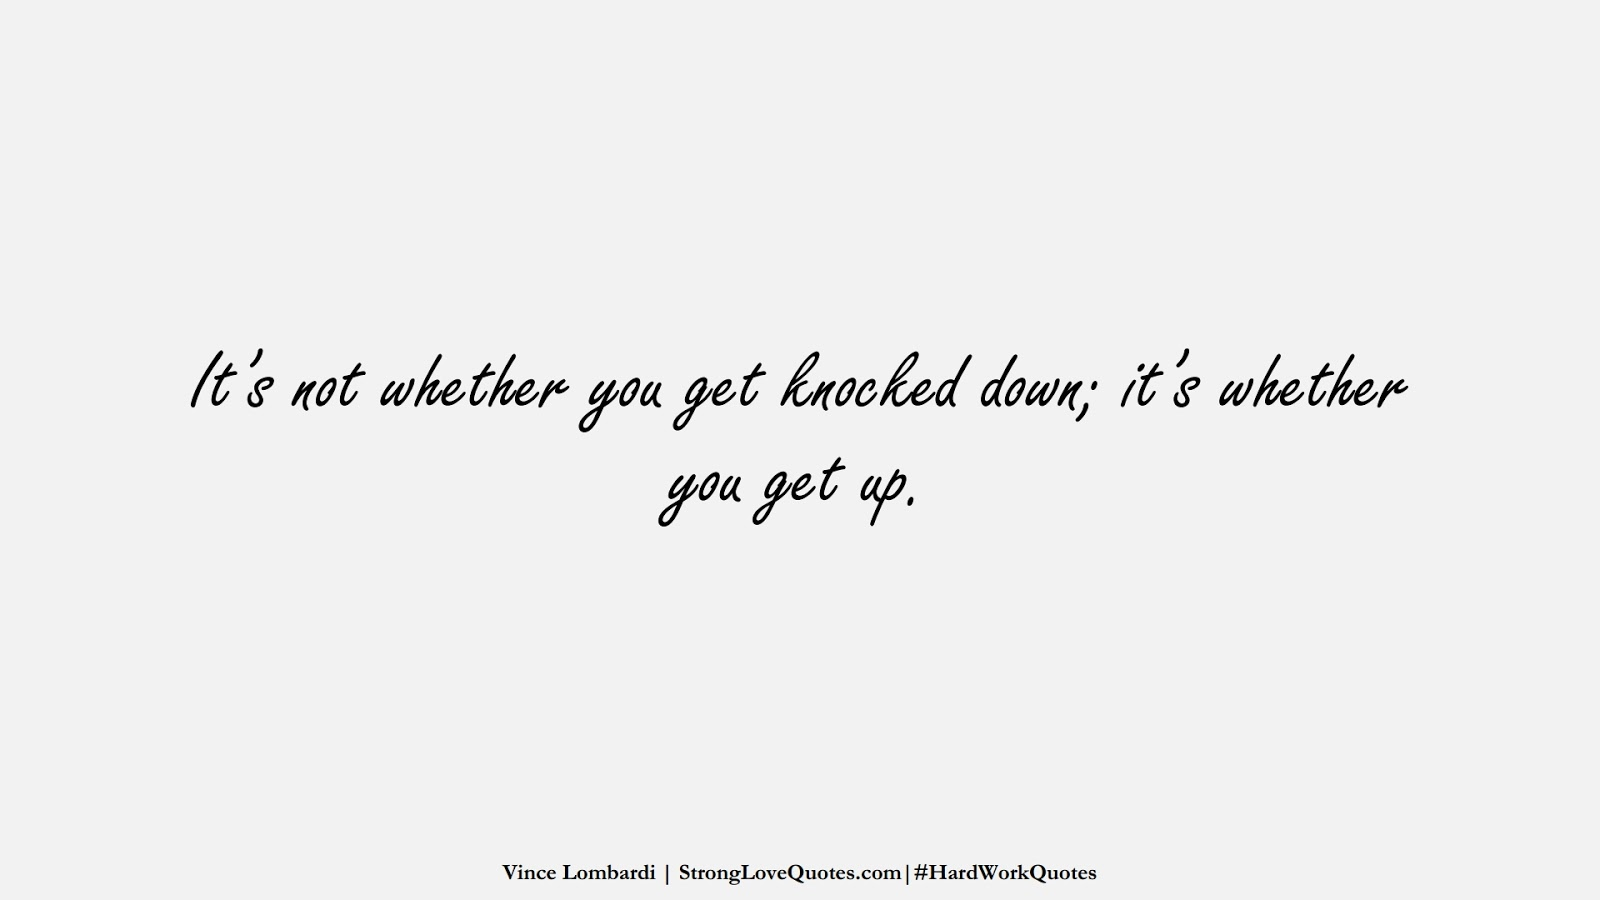 It's not whether you get knocked down; it's whether you get up. (Vince Lombardi);  #HardWorkQuotes